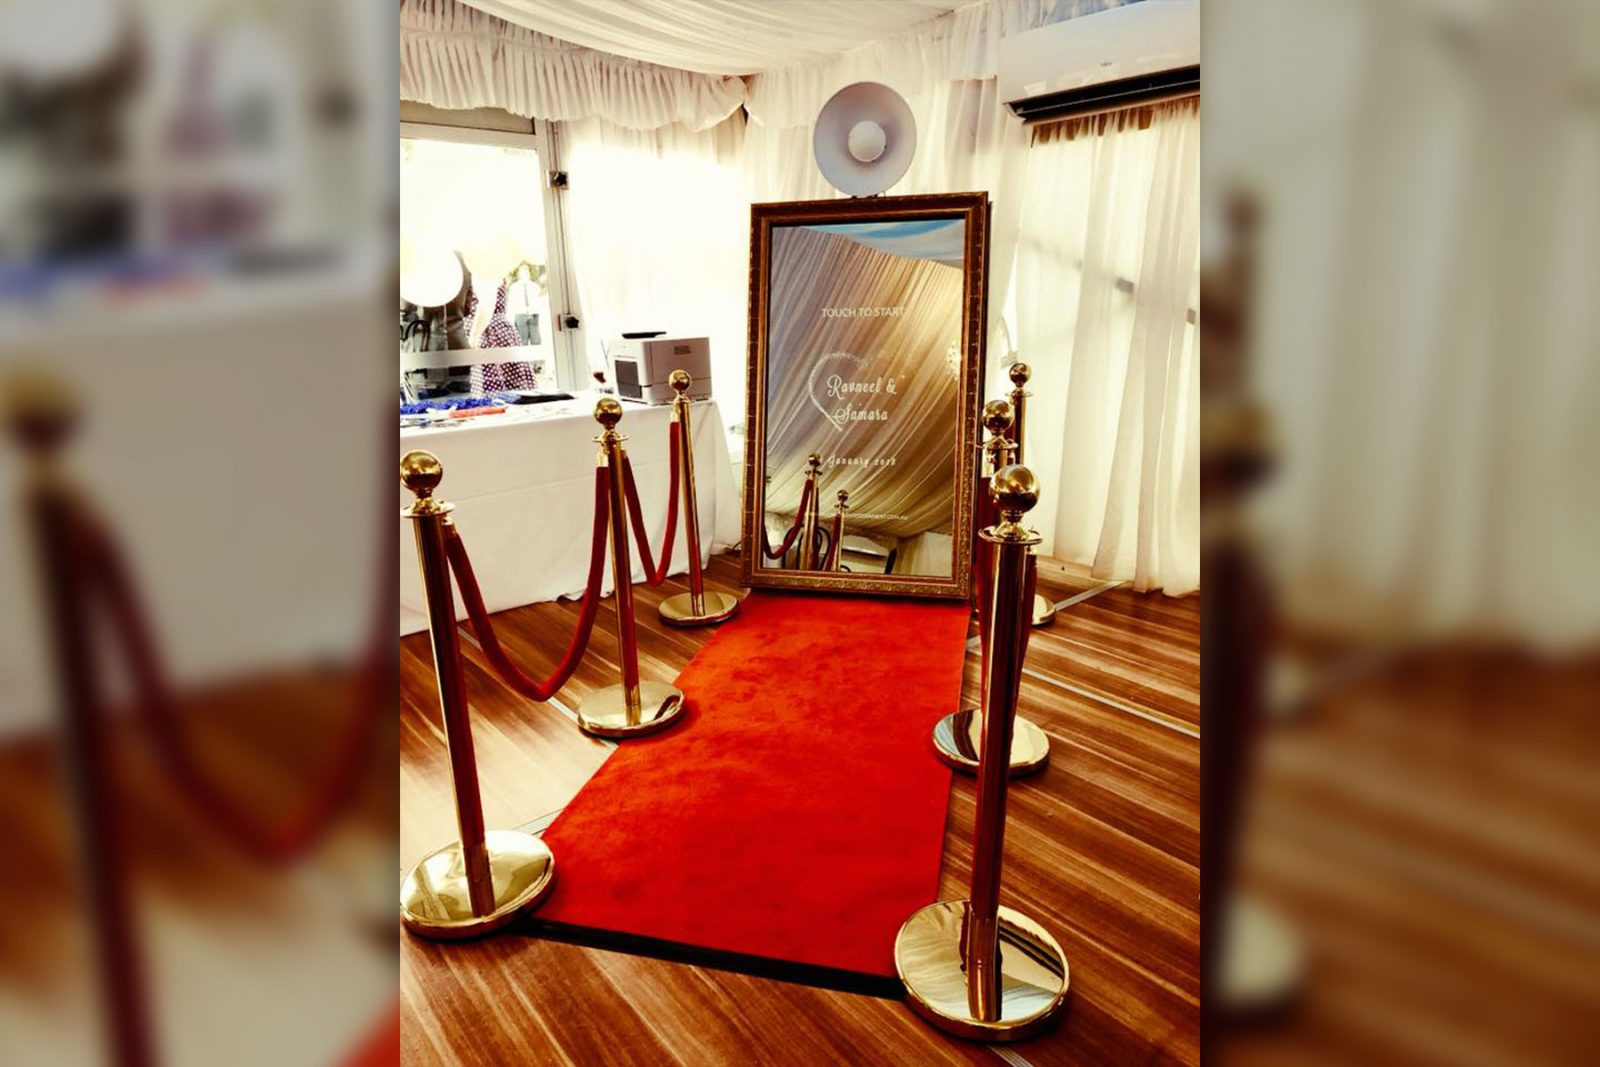 mirror me photo booth with red carpet